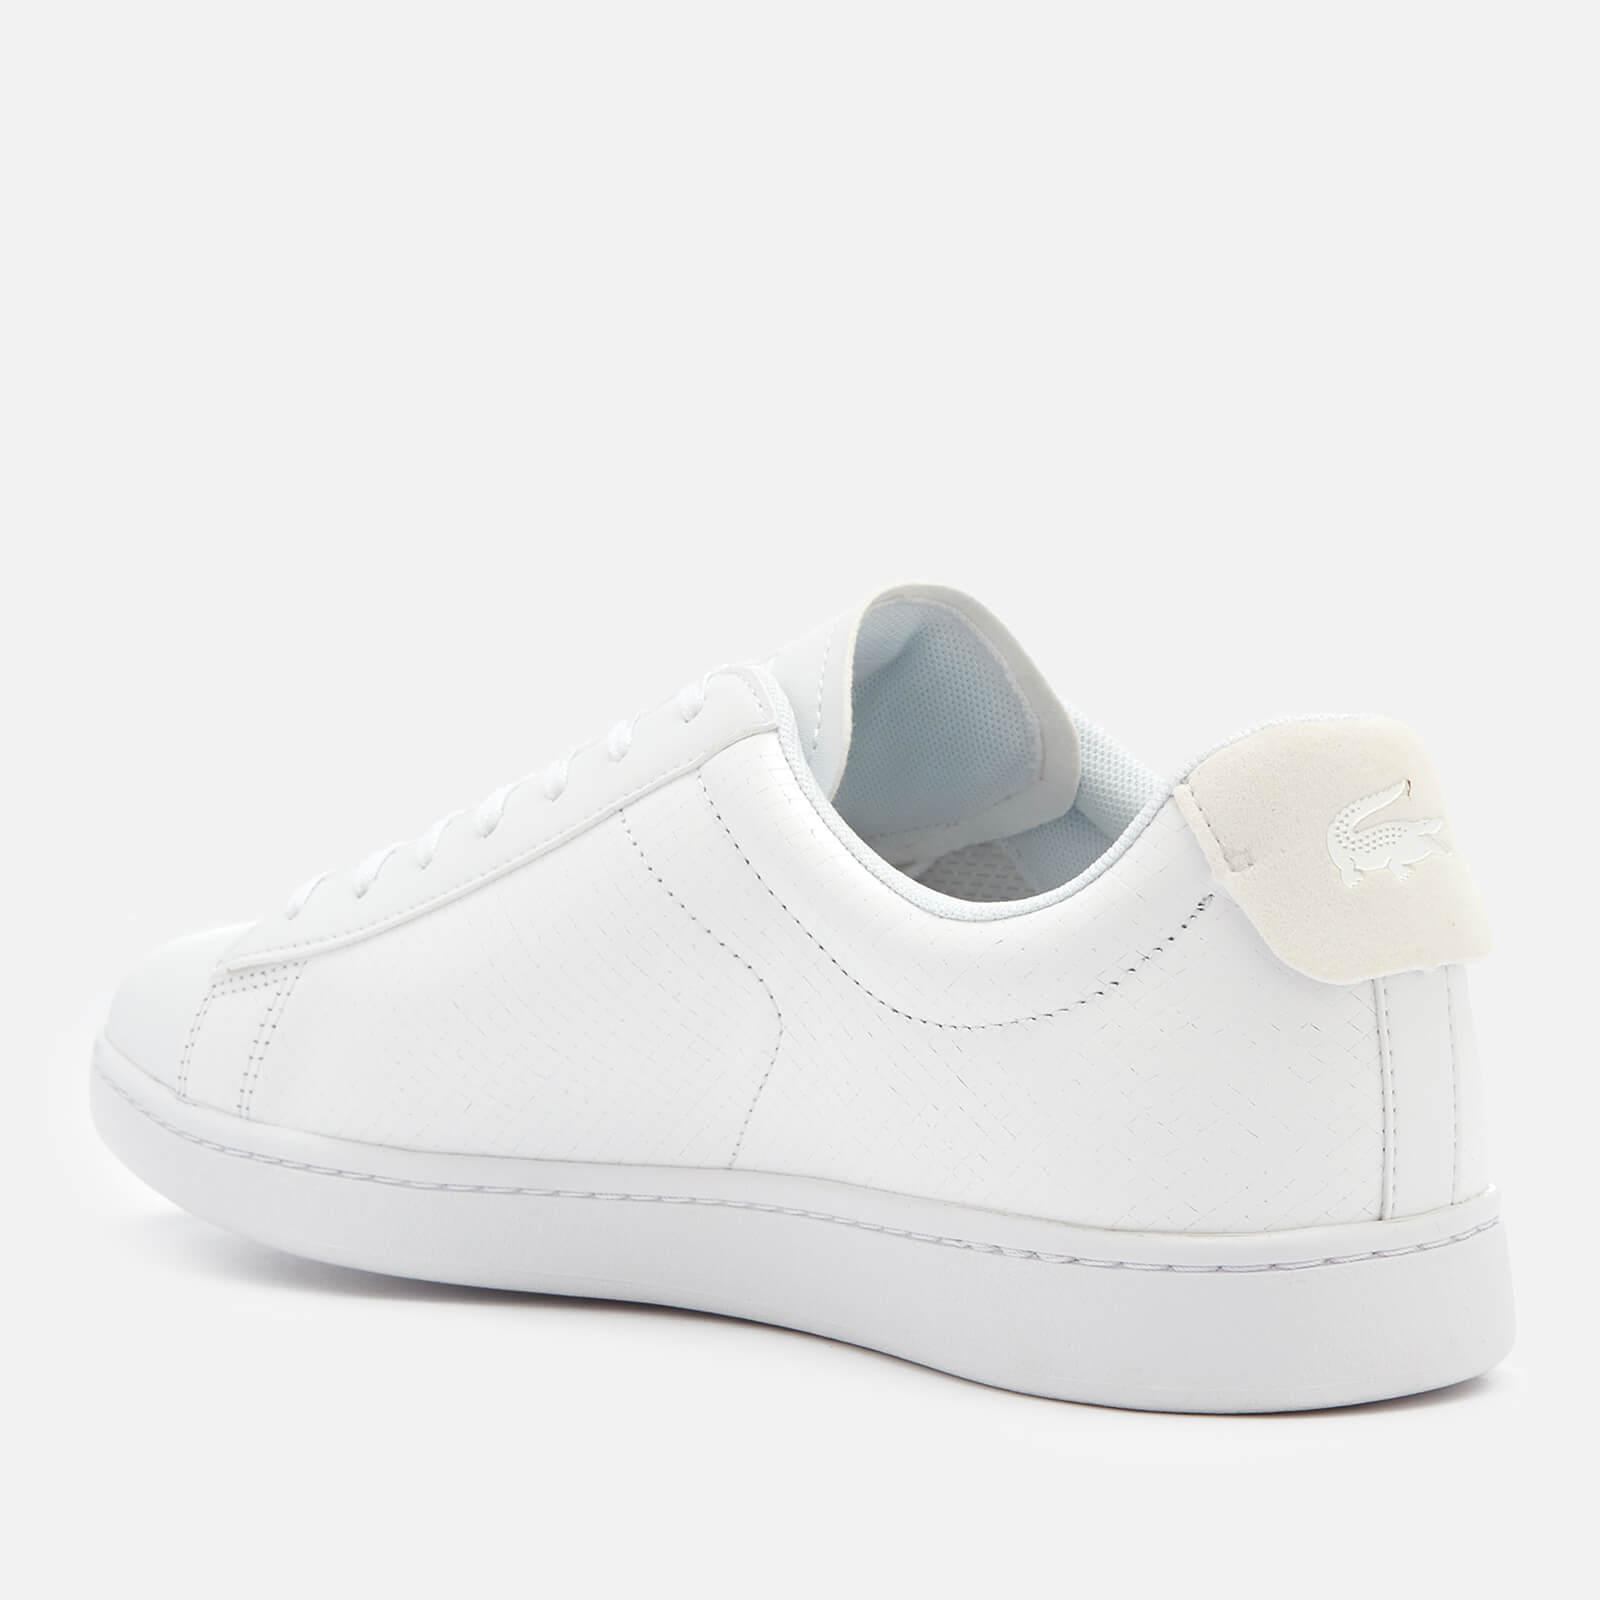 e59ad3c9747837 Lacoste Carnaby Evo 318 7 Croc Leather Trainers in White for Men - Lyst